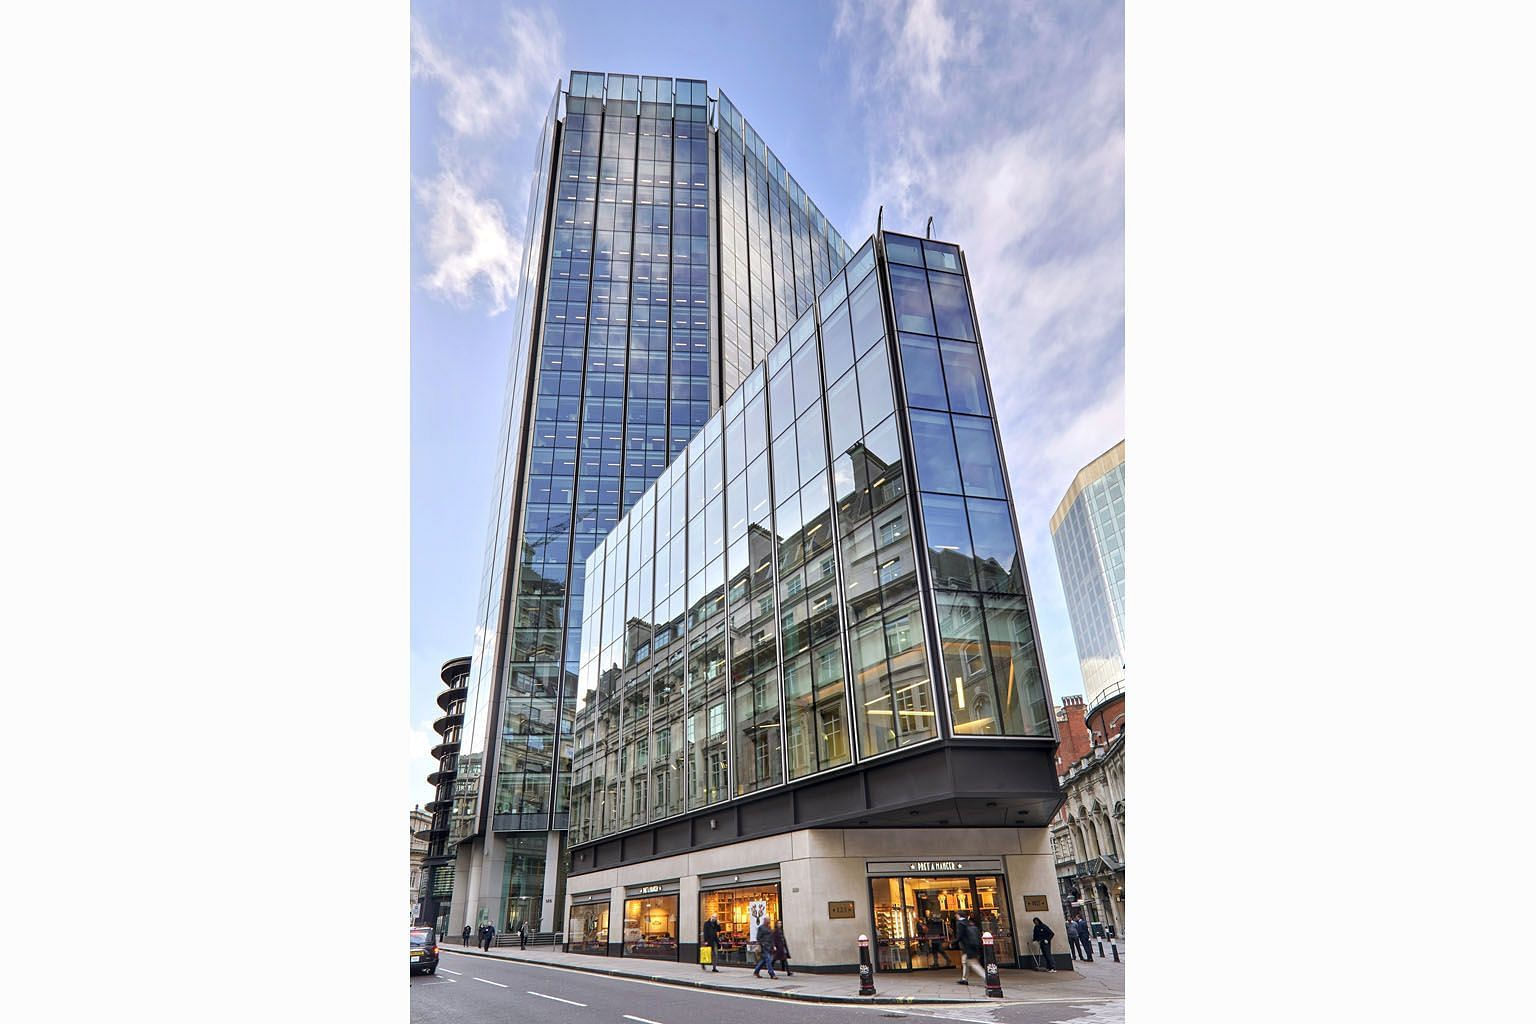 The prime 26-storey freehold building at 125 Old Broad Street in London's financial district is within walking distance from the Bank of England's headquarters.